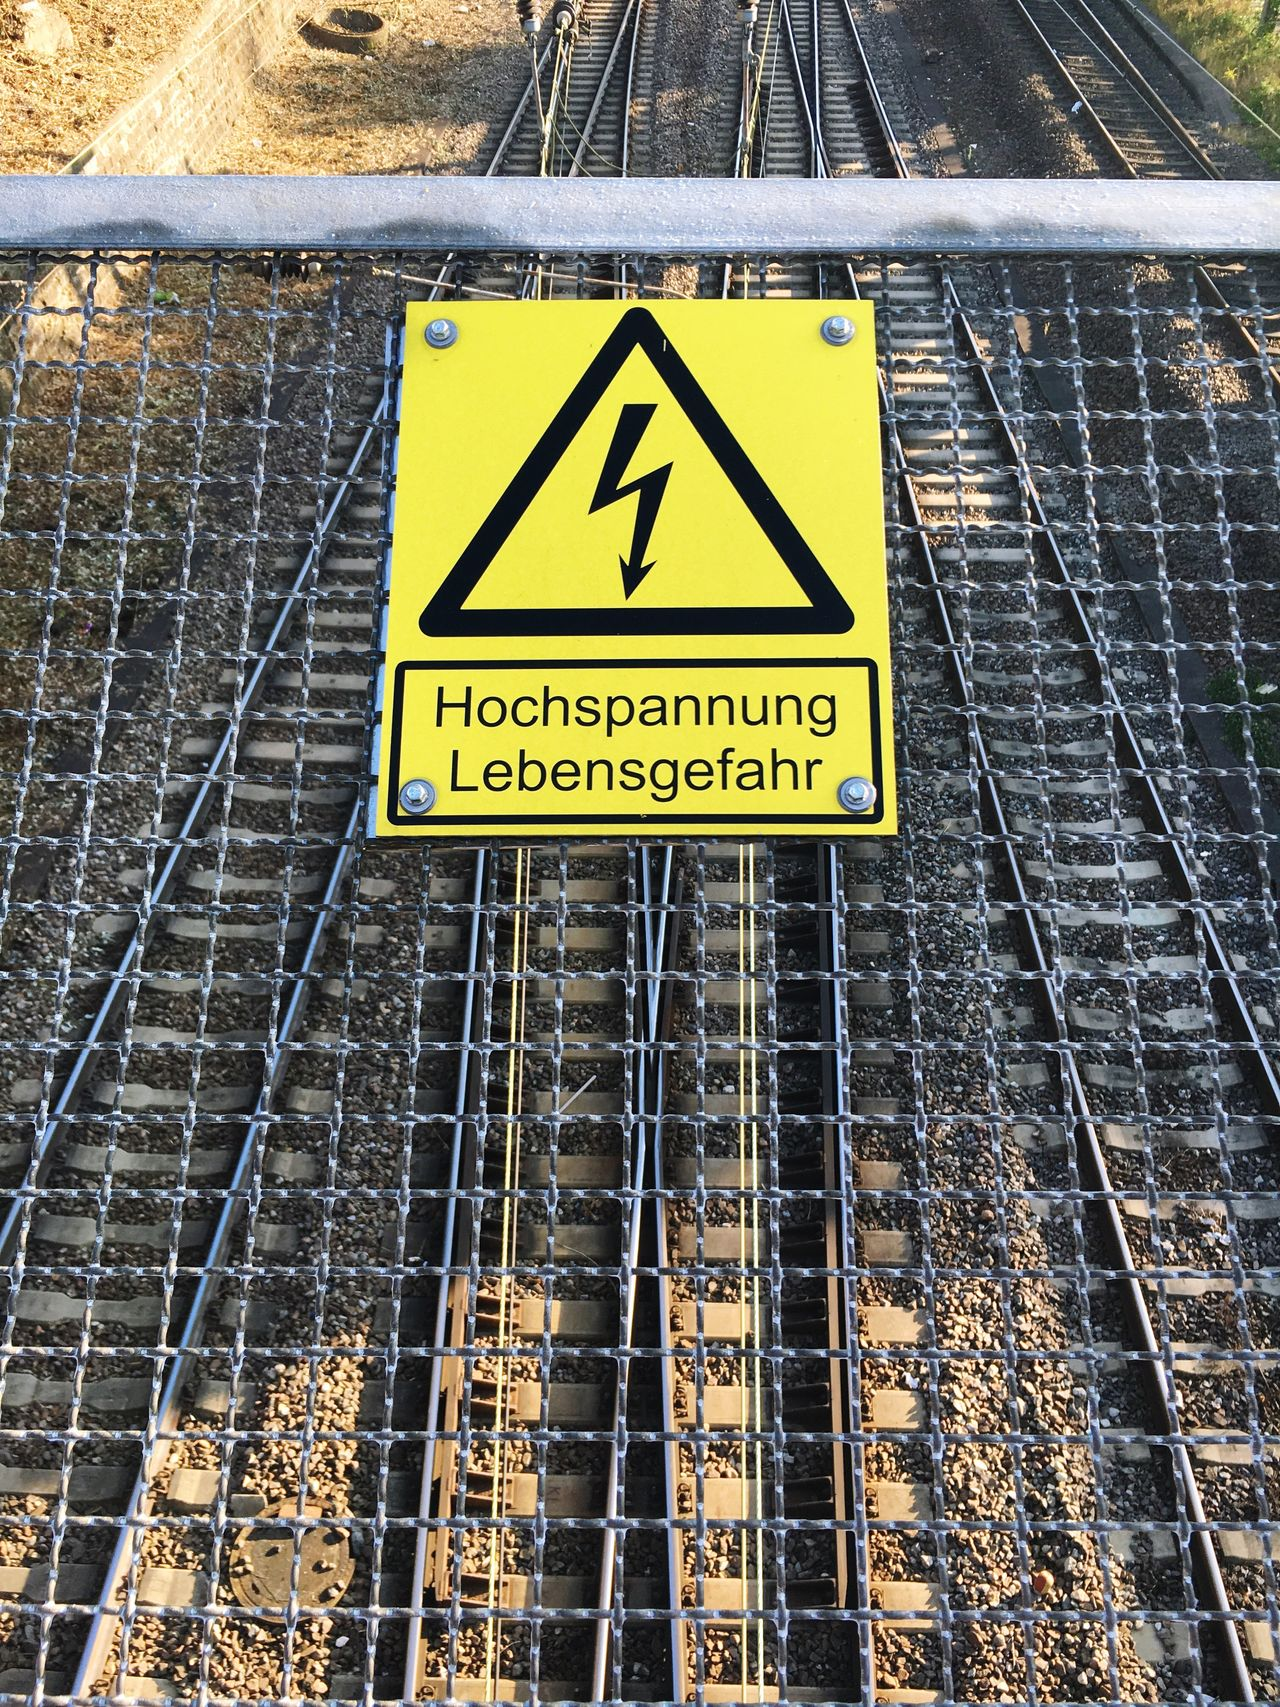 Urban Geometry Communication Western Script Text Yellow Warning Sign Sign Information Sign Close-up Information Day Outdoors Signboard Geometric Shape No People Railway Rail Rails Sign Signs Street Photography Streetphotography Geometric Shapes Geometry Urban